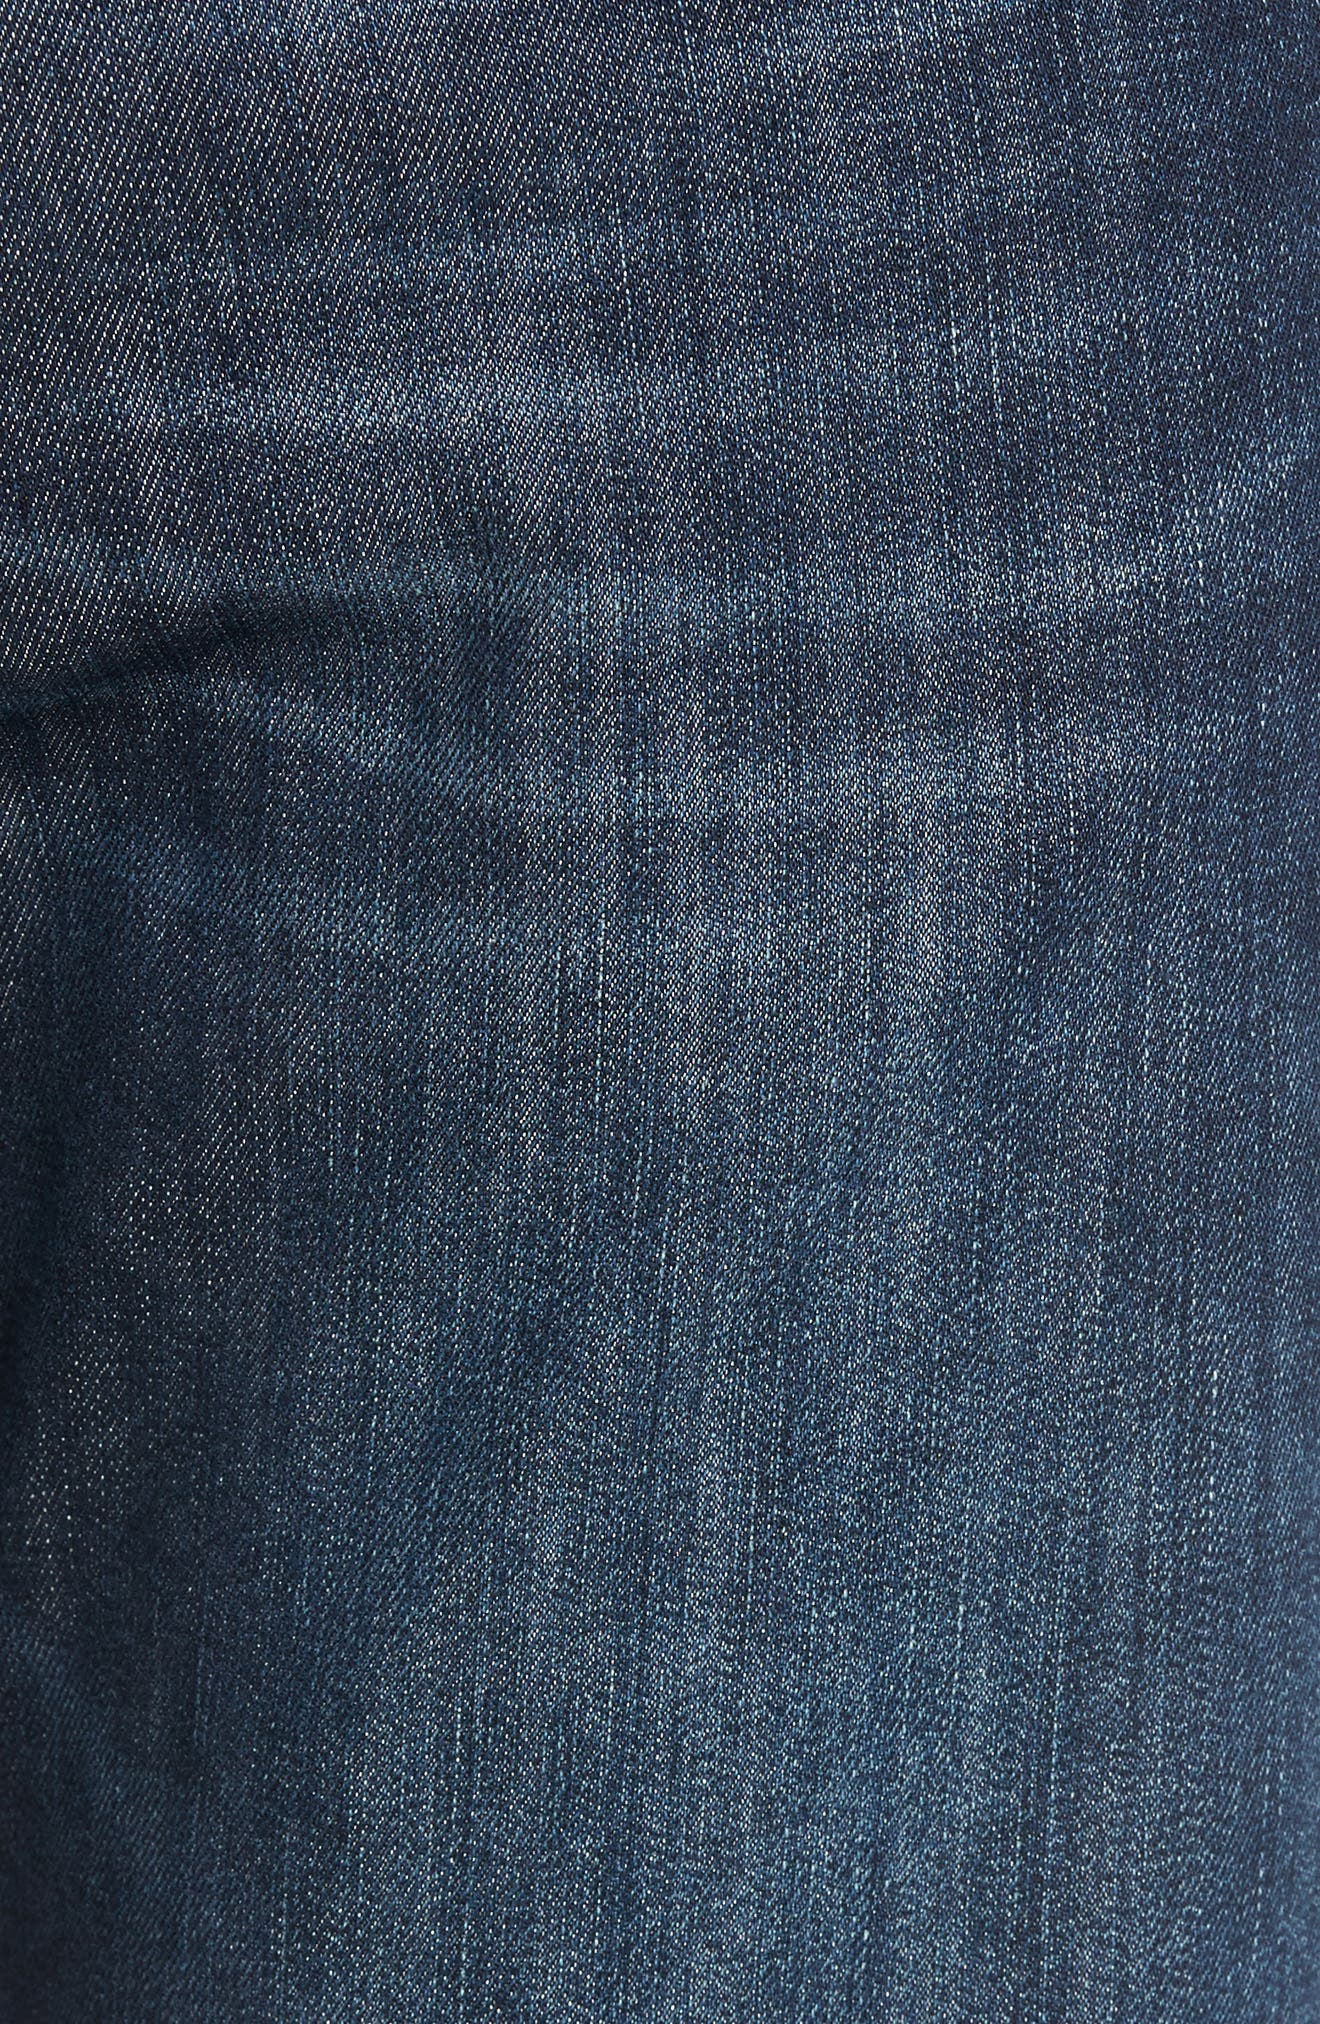 Myles Straight Leg Jeans,                             Alternate thumbnail 5, color,                             Deep Brushed Stanford